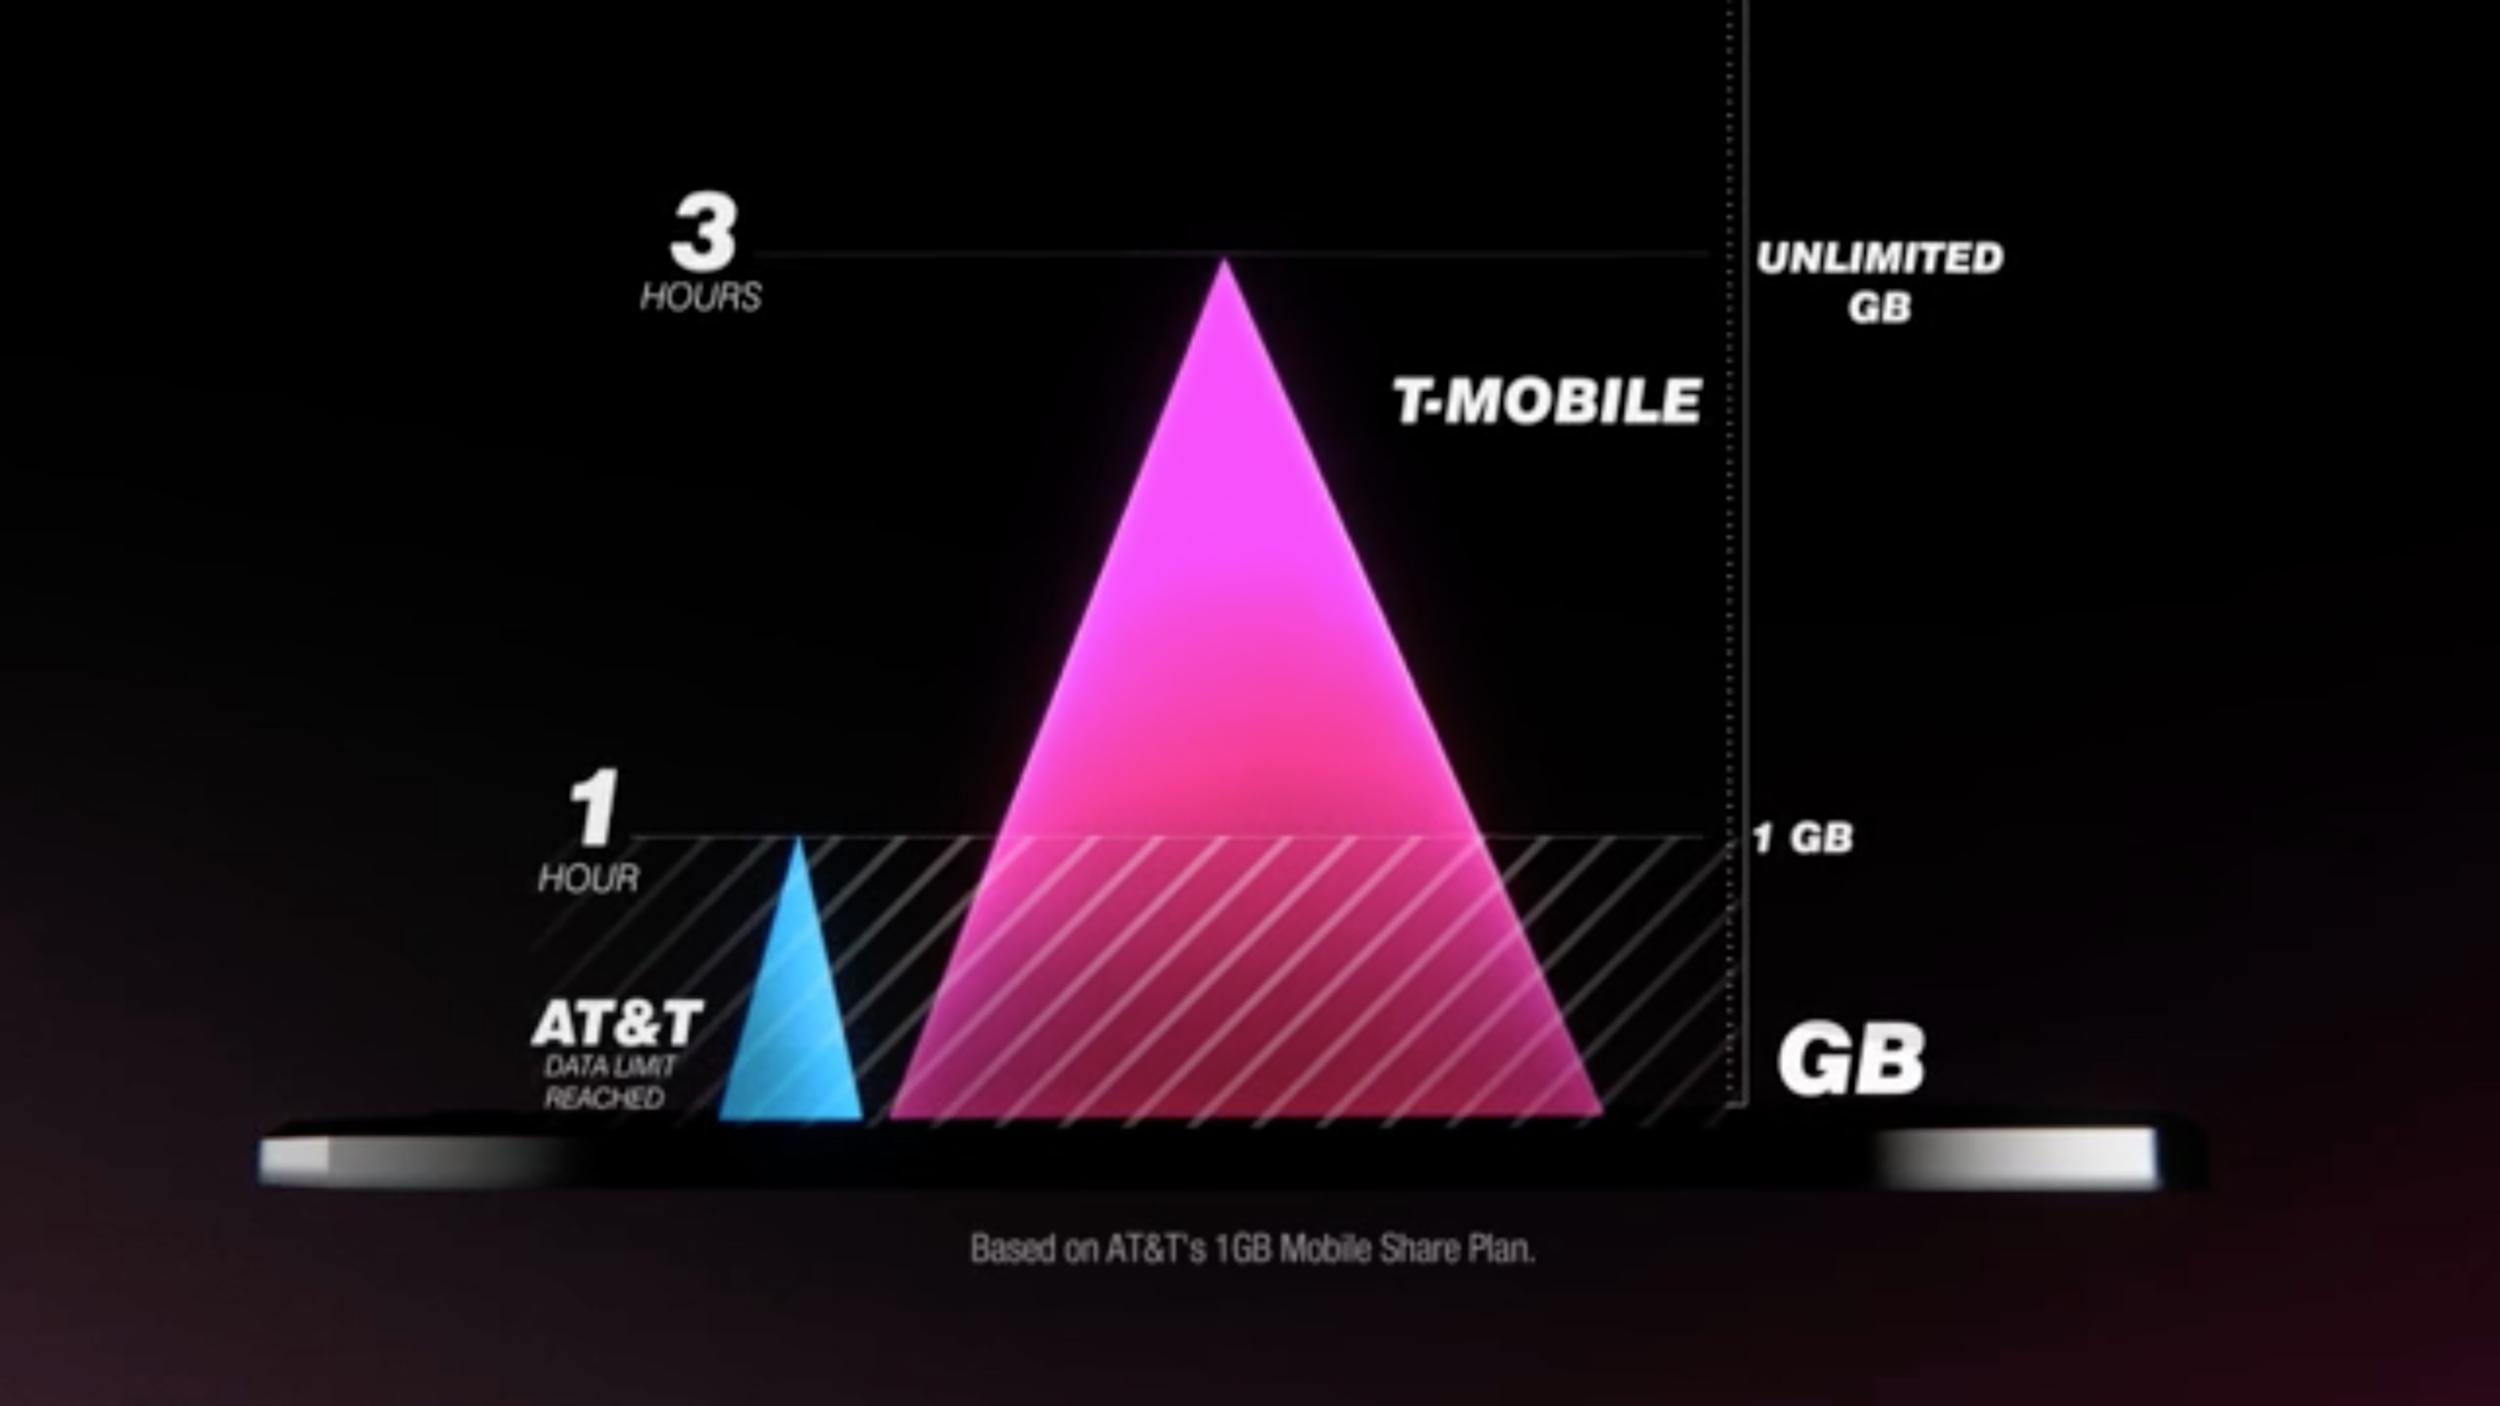 tmo_unlimited_screen_3.png